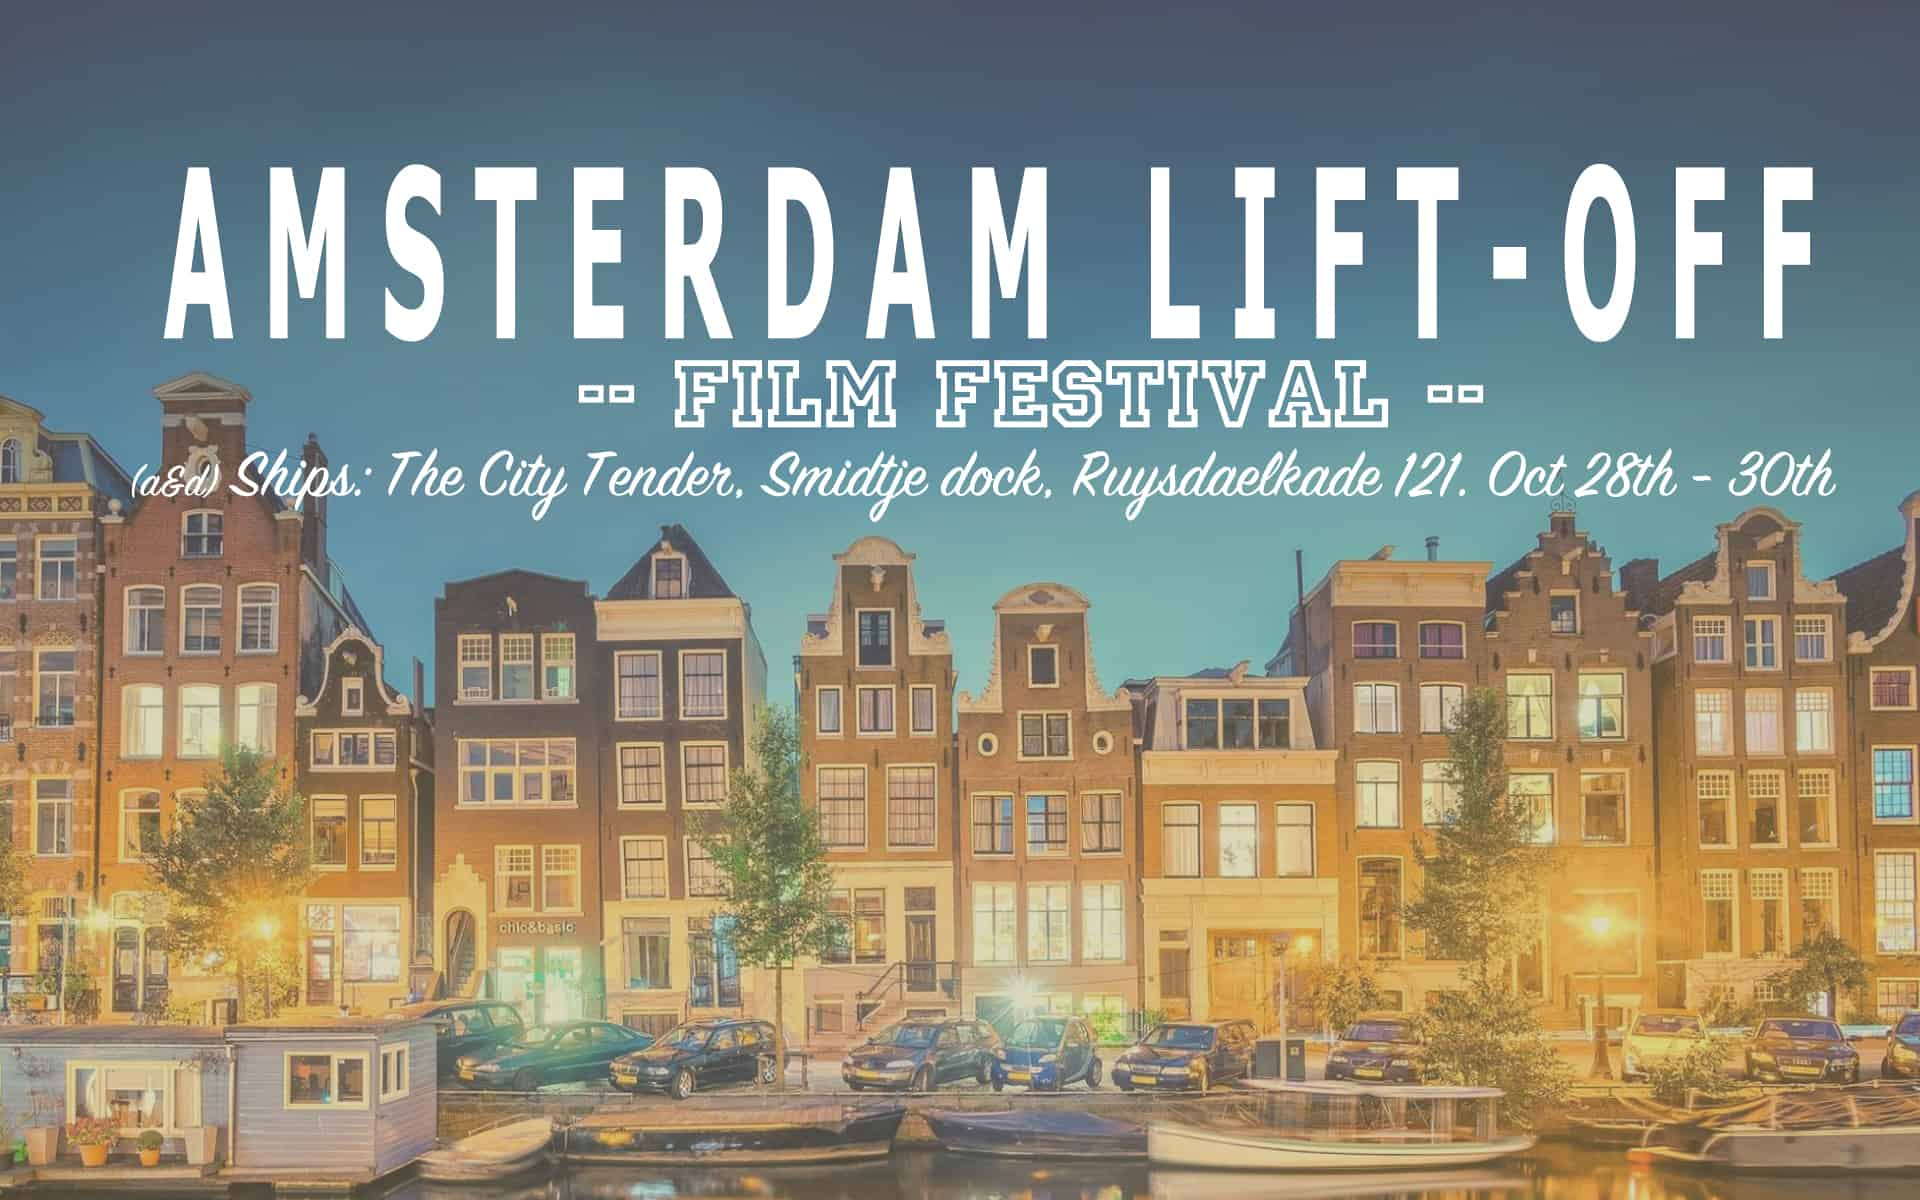 Amsterdam Lift-Off Film Festival 2015 | Lift-Off Global Network